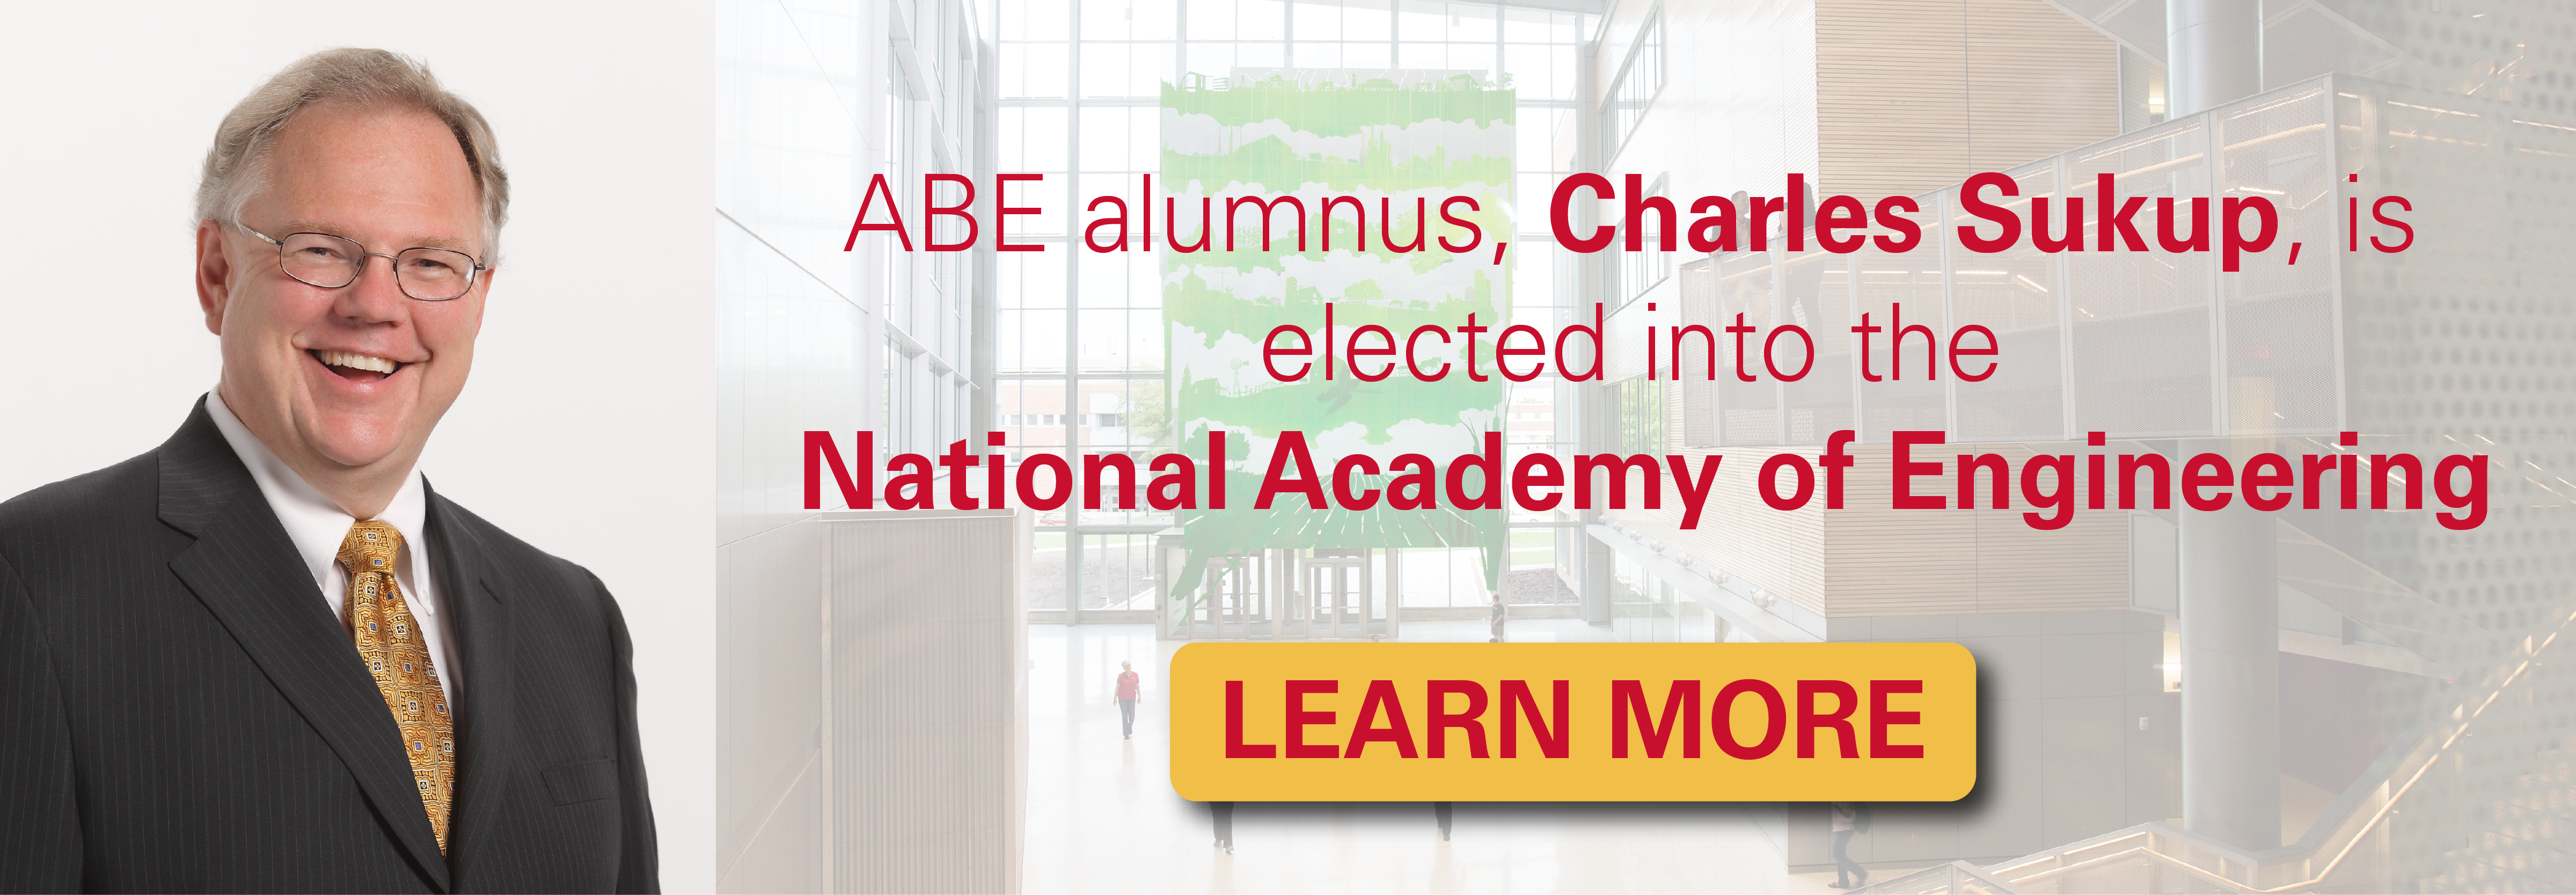 ABE alumnus, Charles Sukup, is elected into the National Academy of Engineering